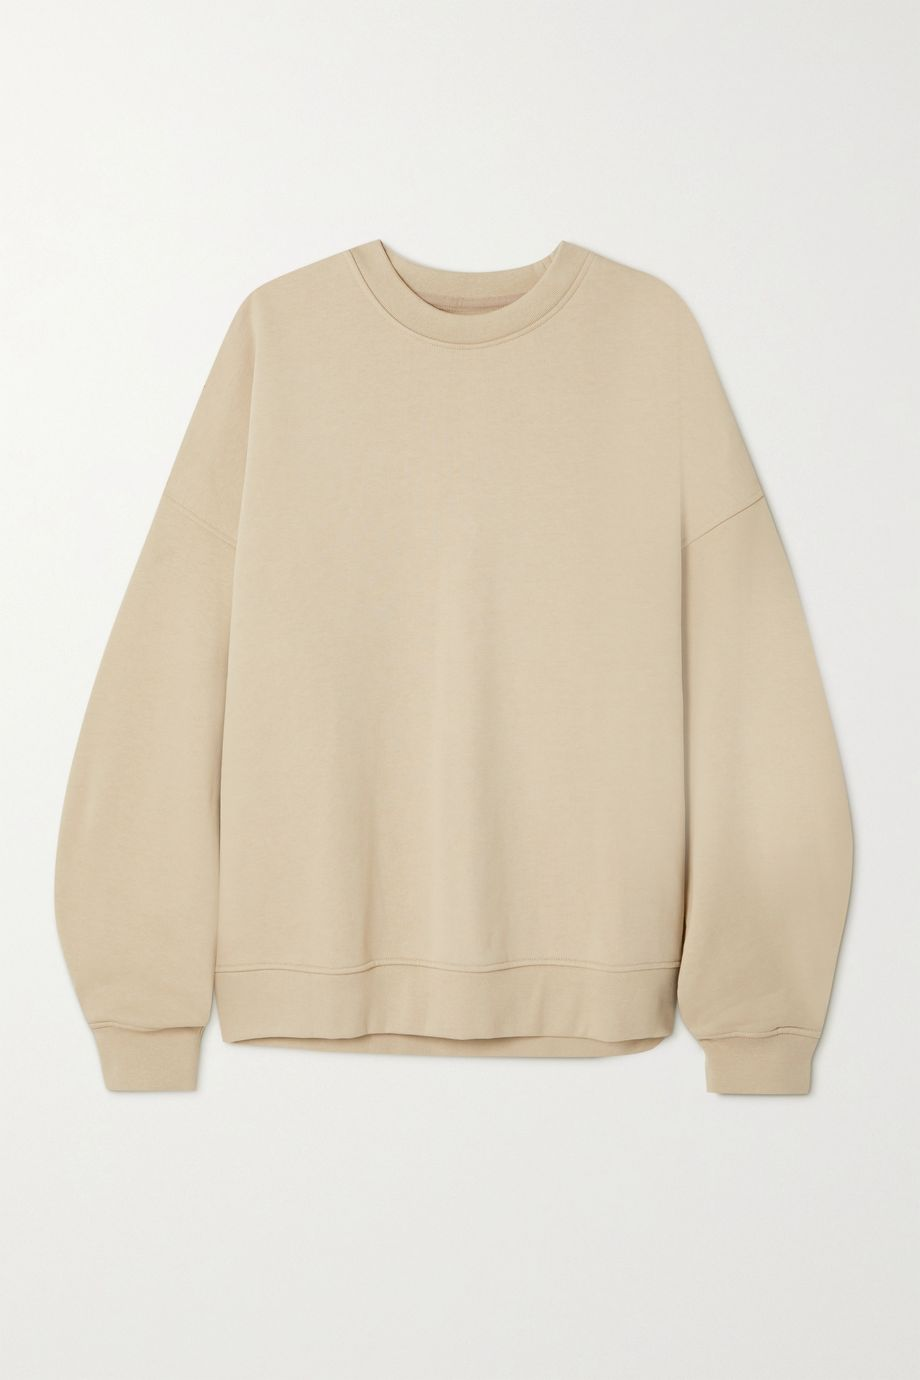 CAES + NET SUSTAIN pleated organic cotton-jersey sweatshirt